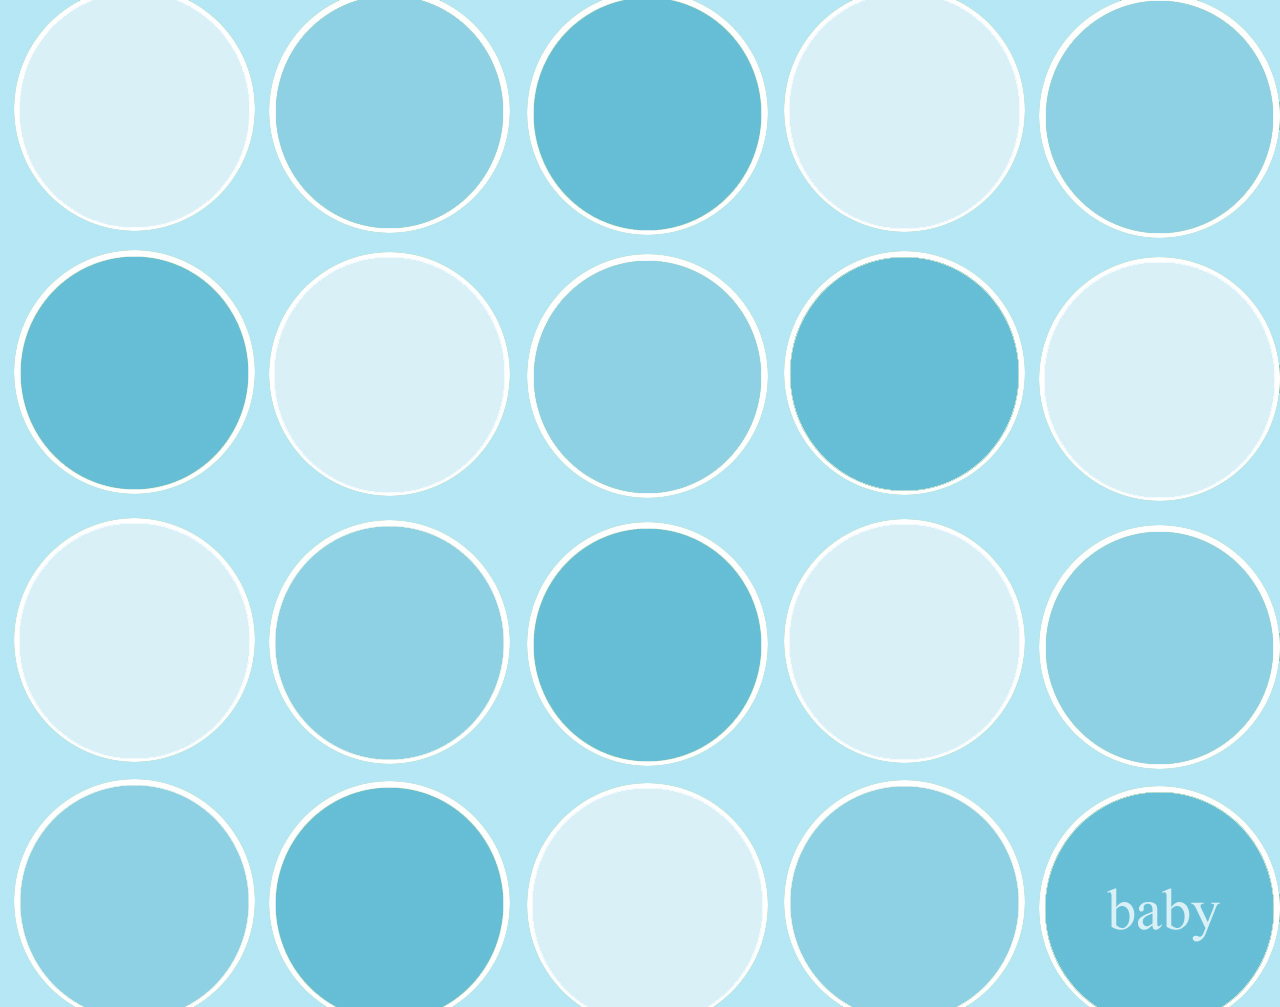 kb jpeg background wallpaper image baby blue terry cloth towel 1280x1007